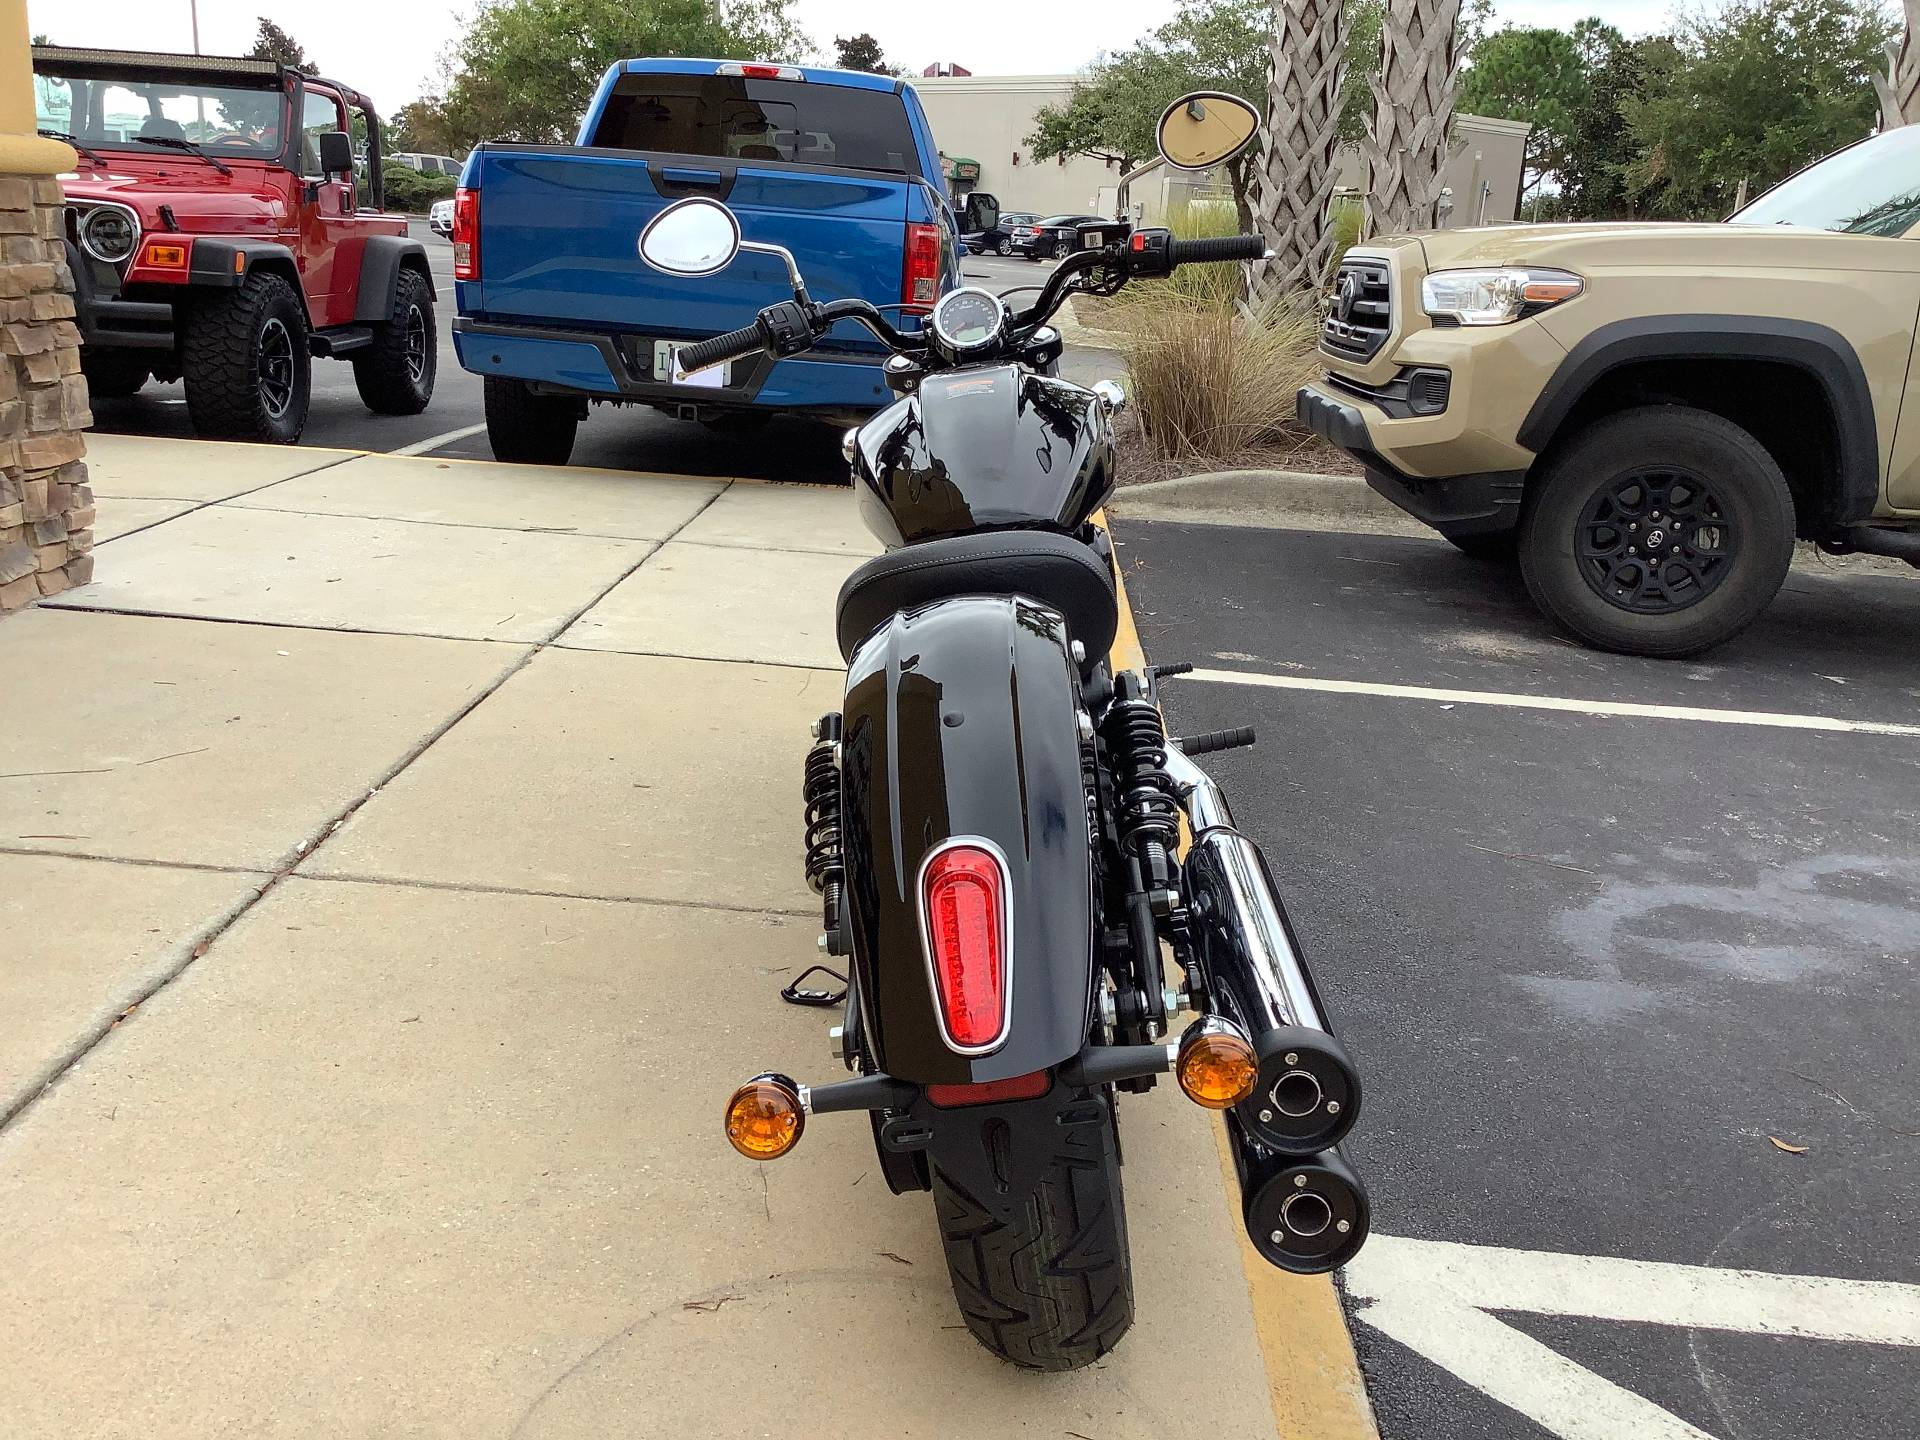 2021 Indian SCOUT 60 in Panama City Beach, Florida - Photo 8